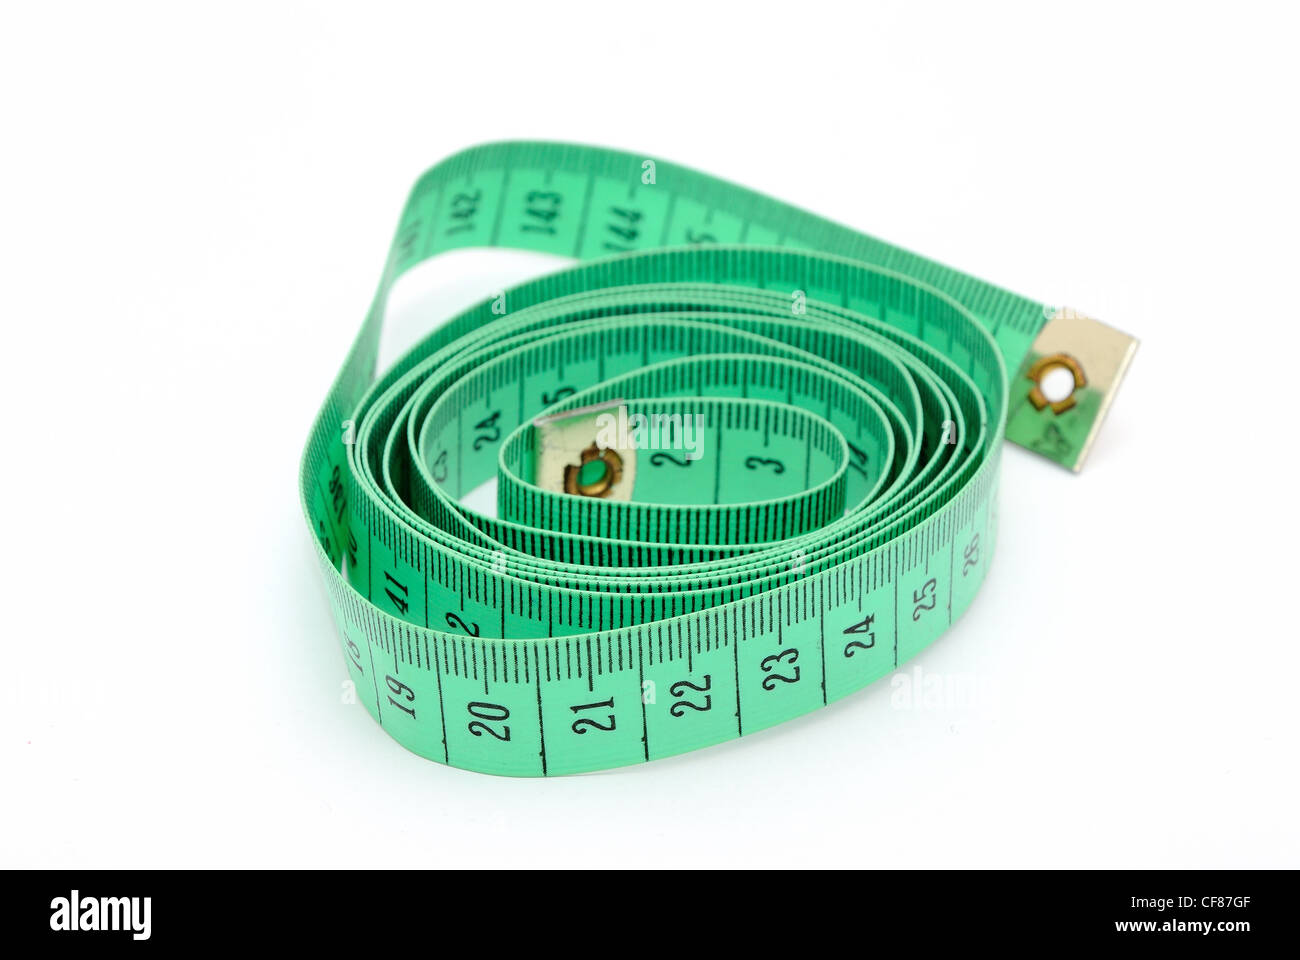 Detail image of twisted green inch tape. - Stock Image